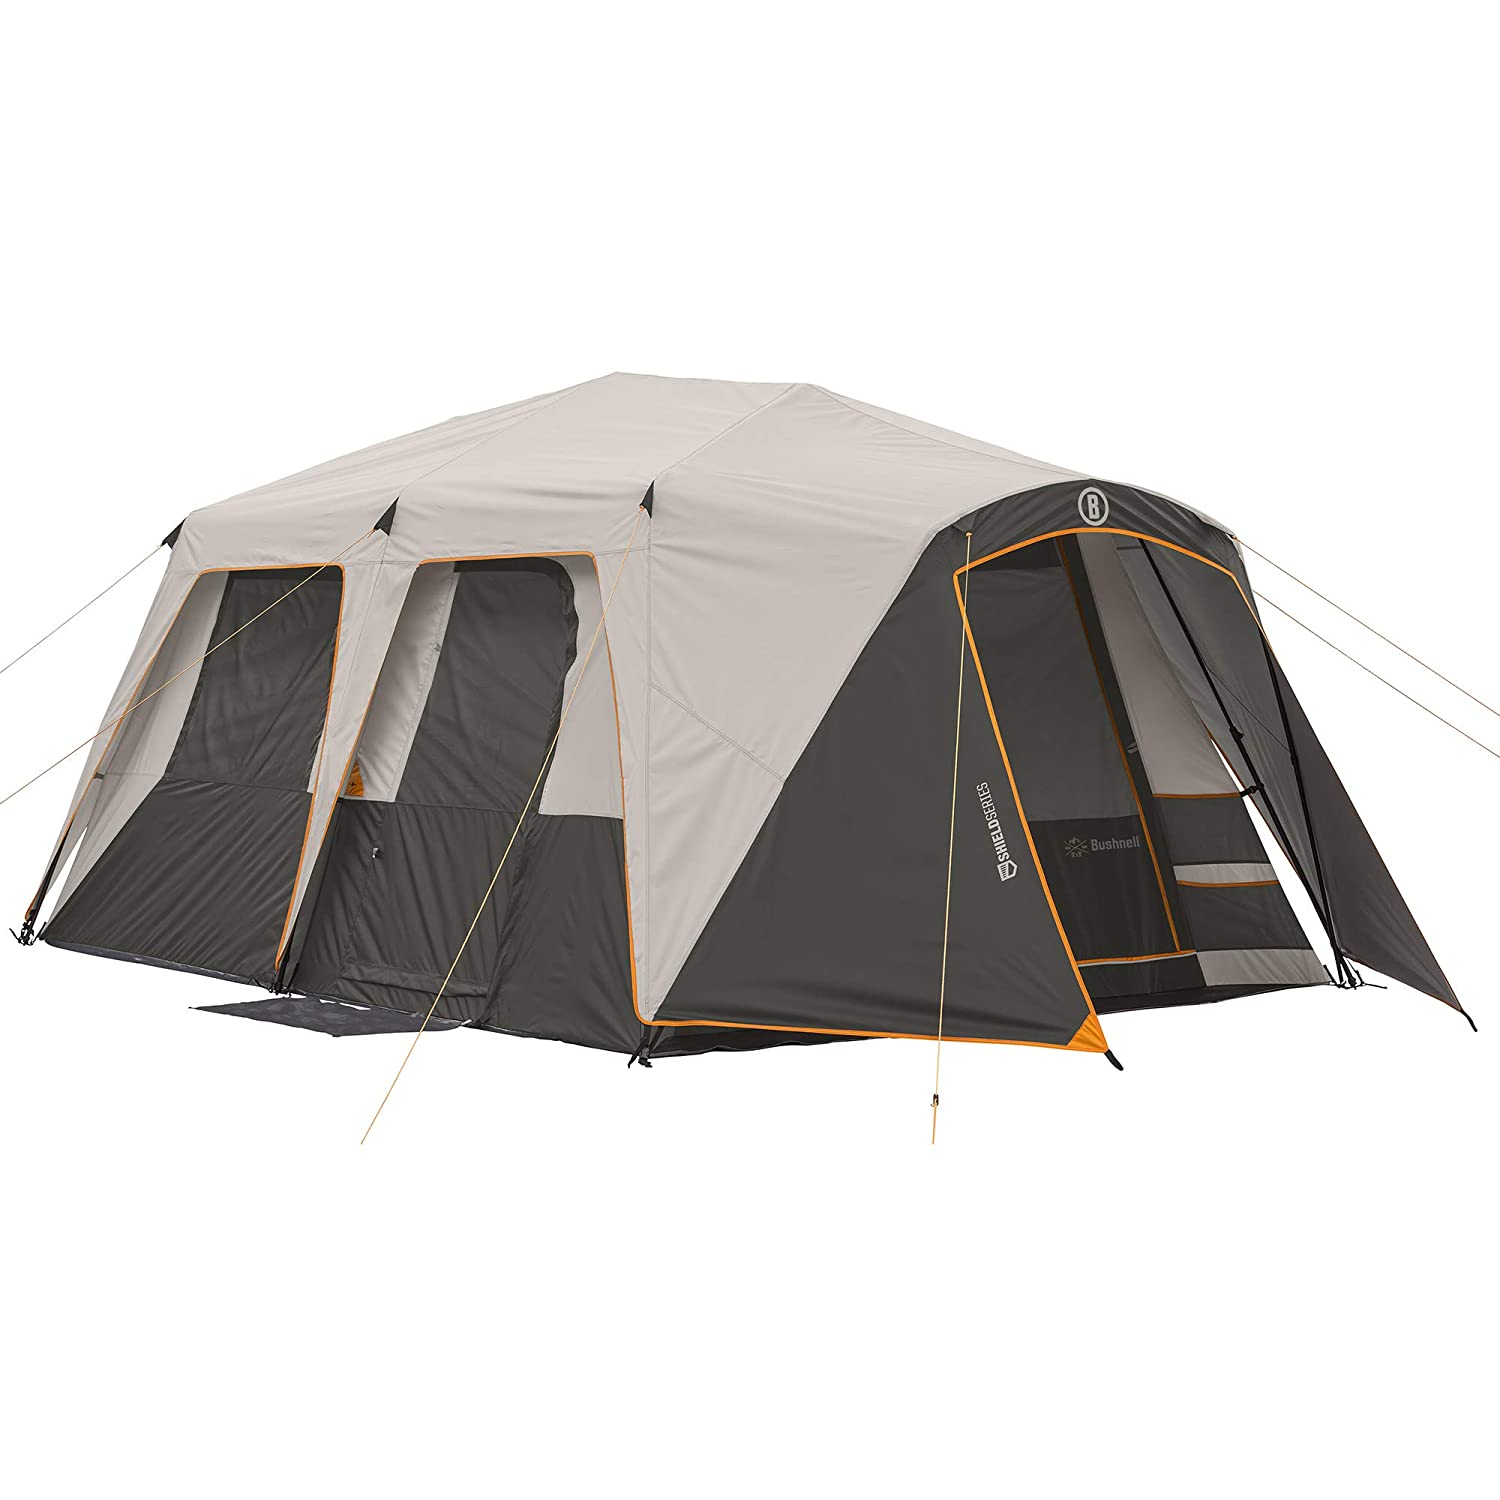 Bushnell Shield Series Tent Review 2020